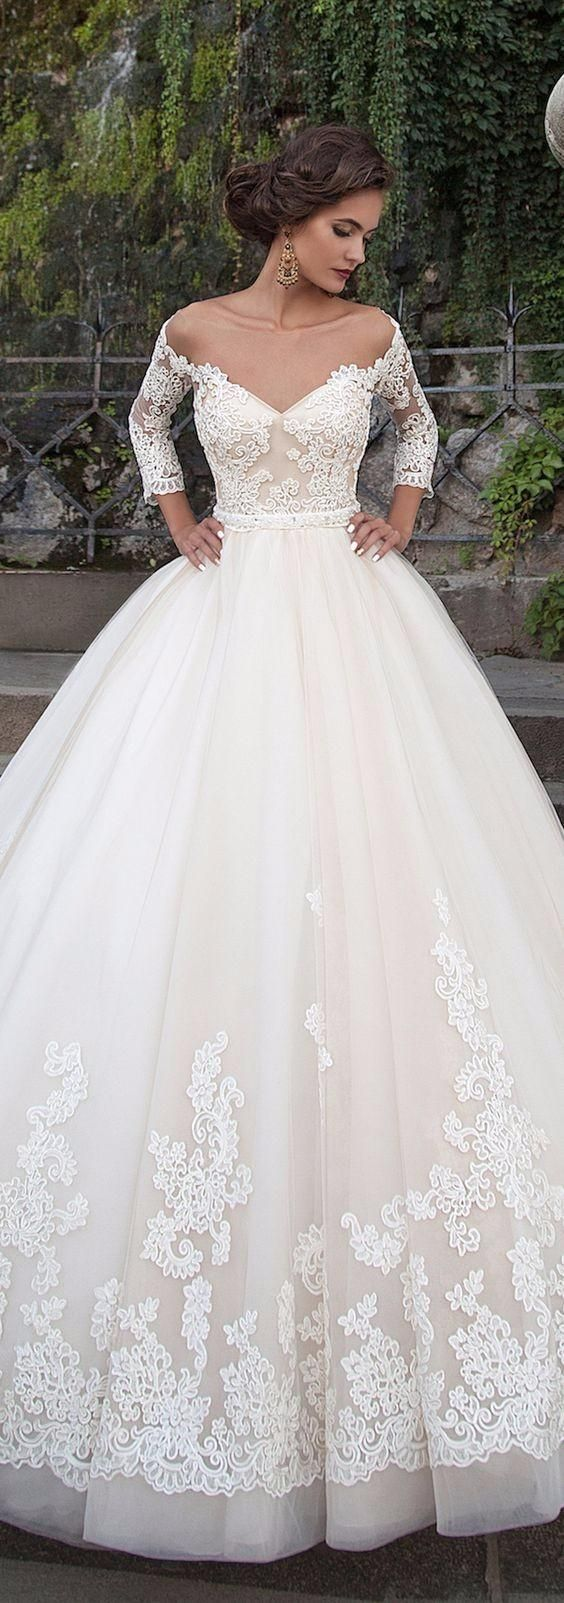 30 Of The Most Graceful & Gorgeous Lace Sleeve Wedding Dresses ...